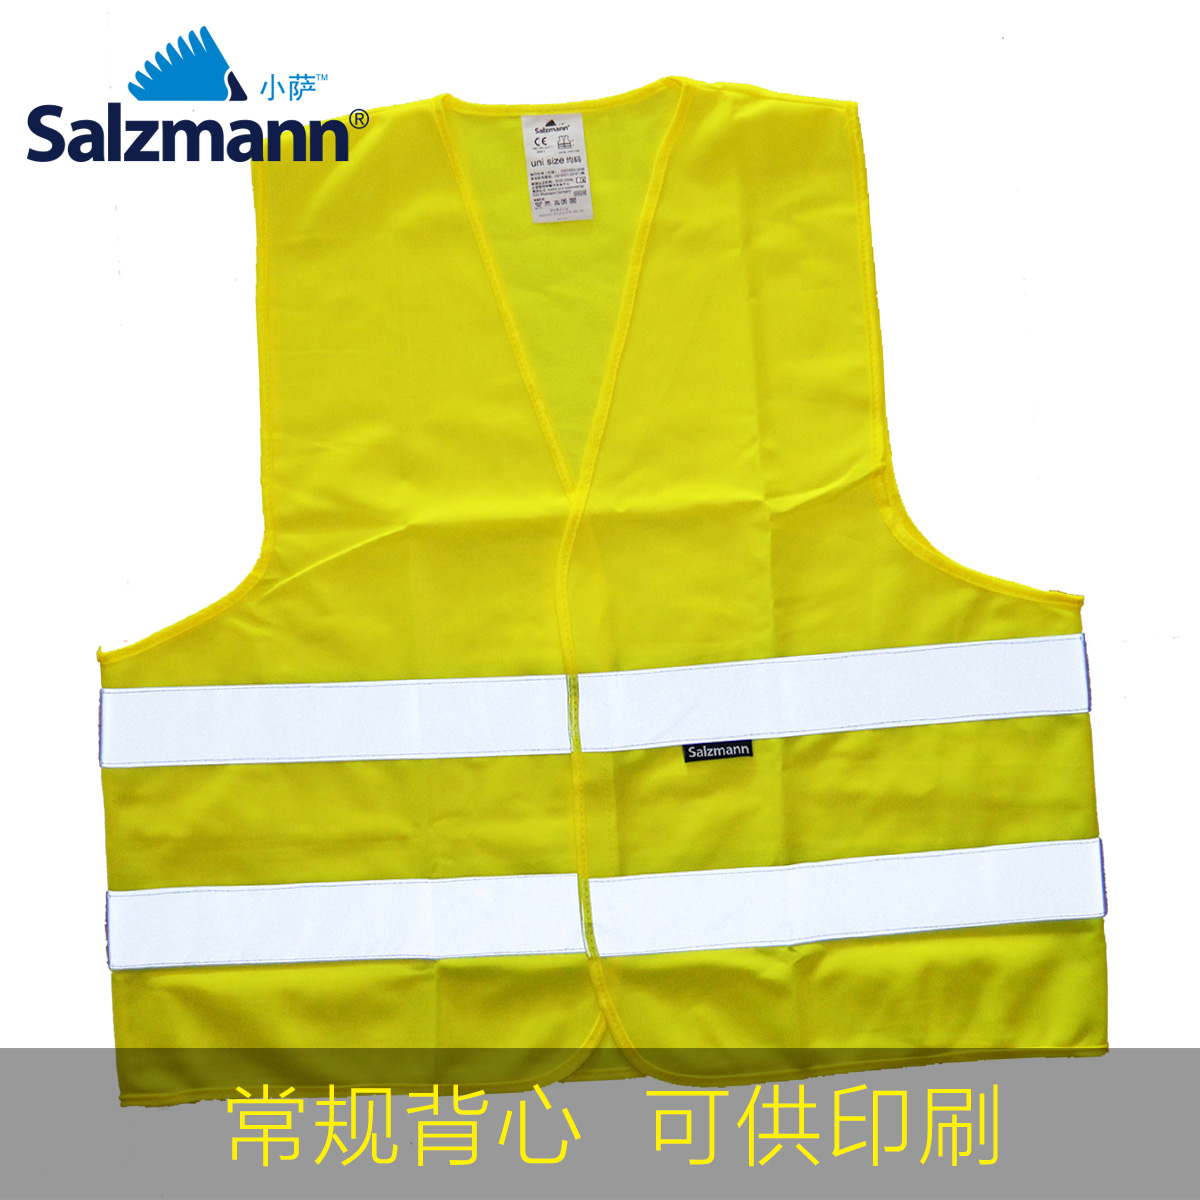 Salzmann Reflective vest Reflective waistcoat Traffic safety protective clothing Sanitary suit Printable automobile vest